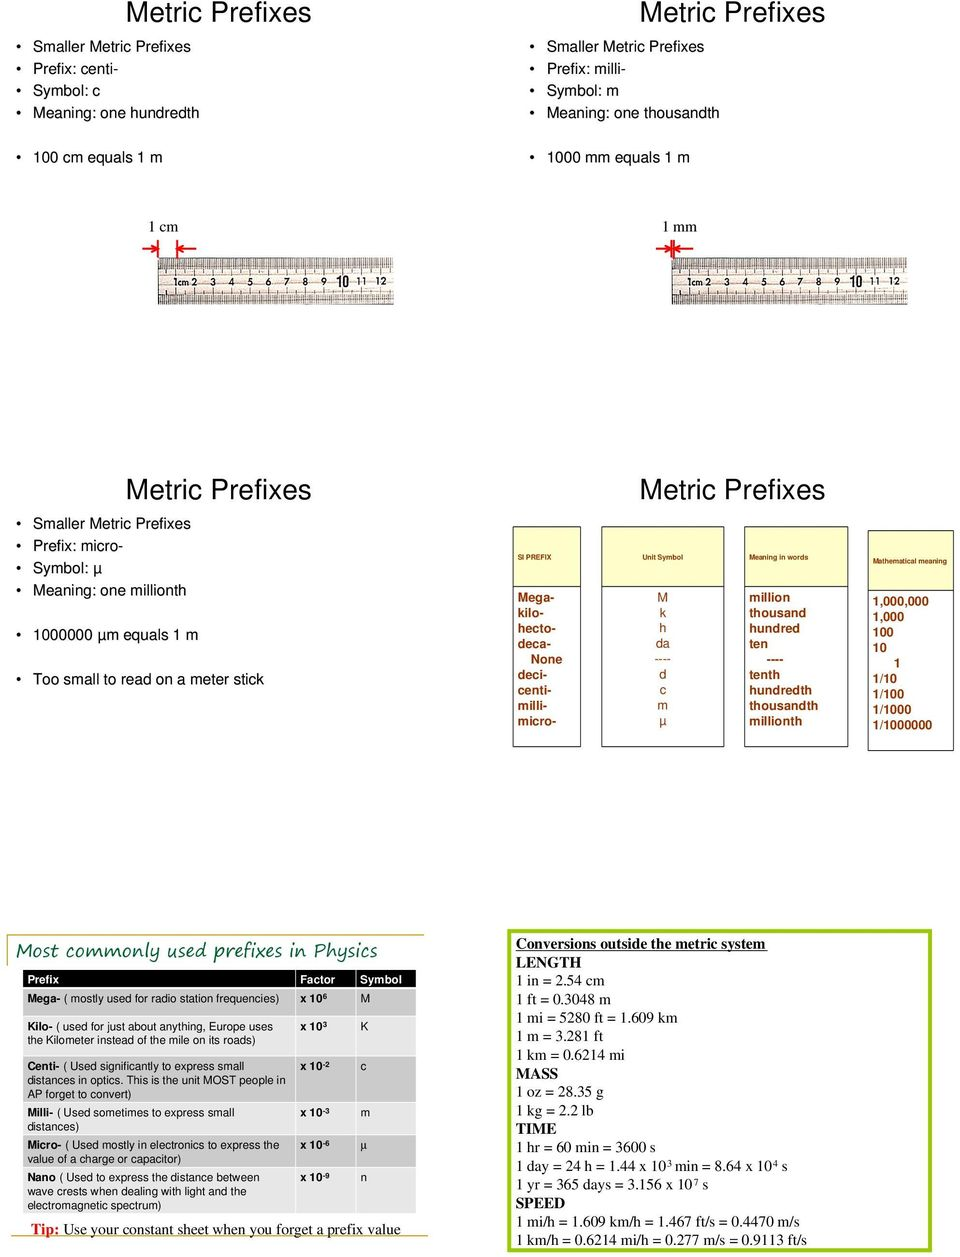 A Mathematical Toolkit Introduction Chapter 2 Objectives Pdf